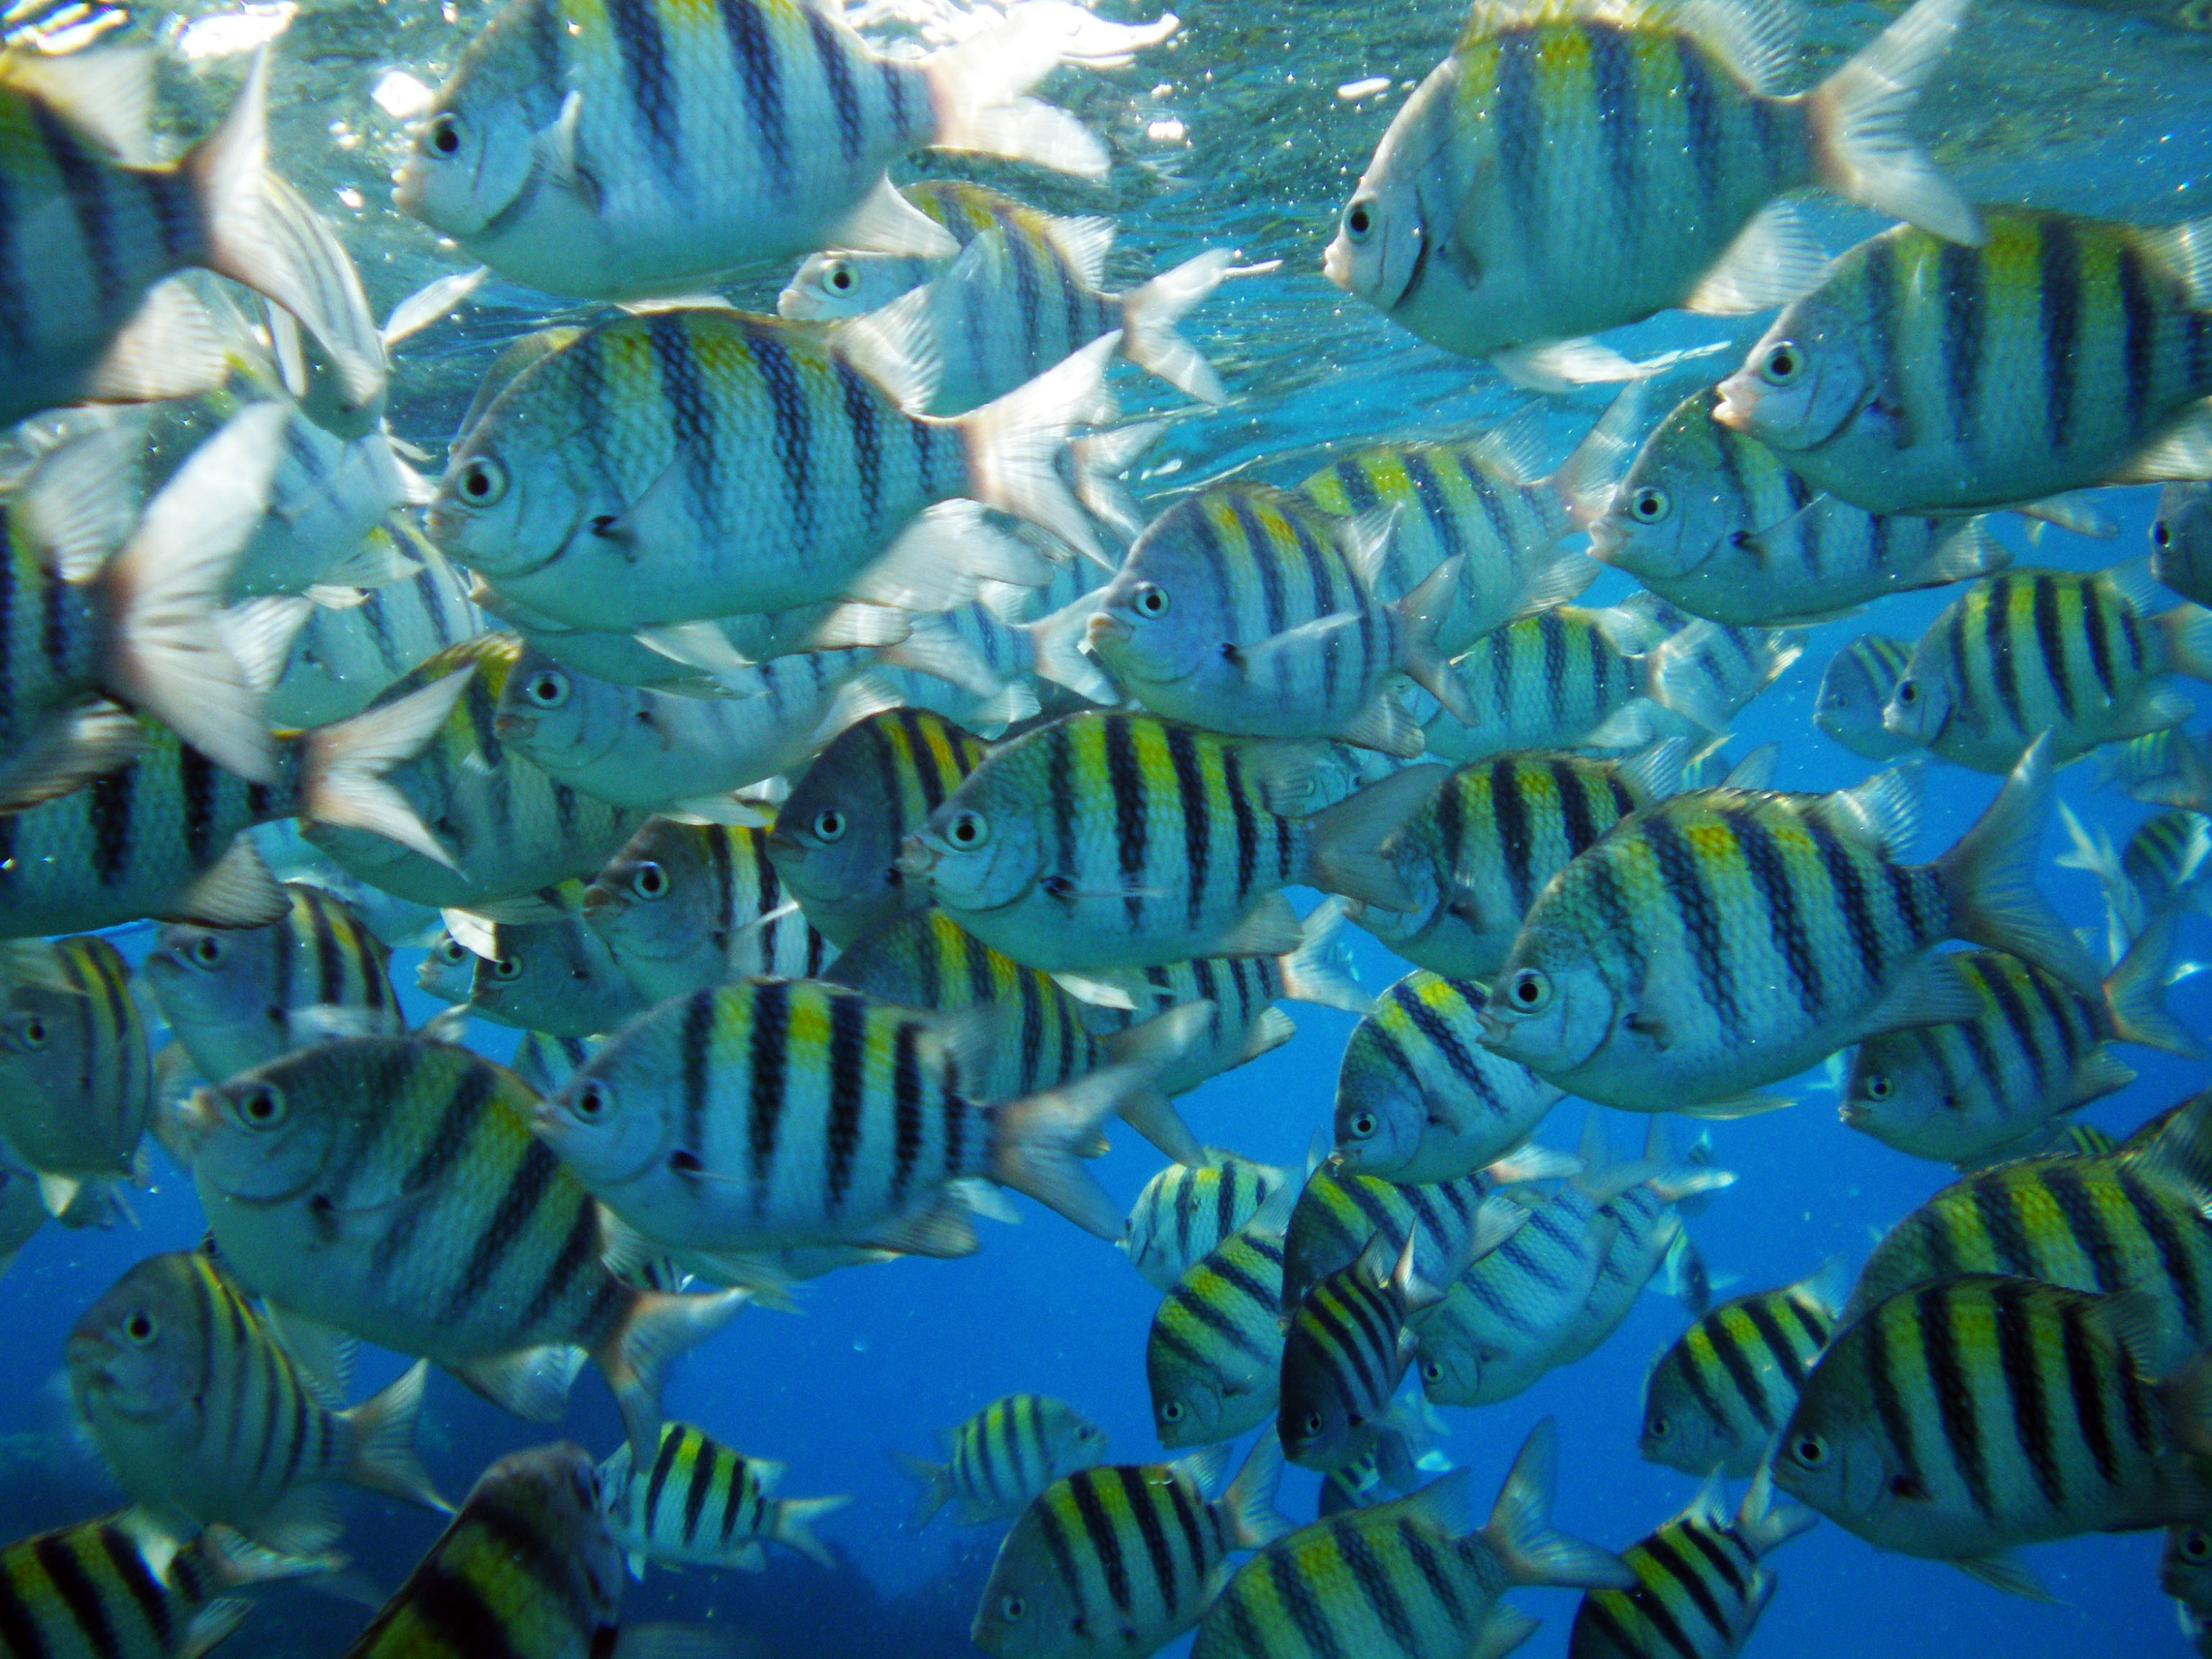 Shoal of píntano fishes wallpaper